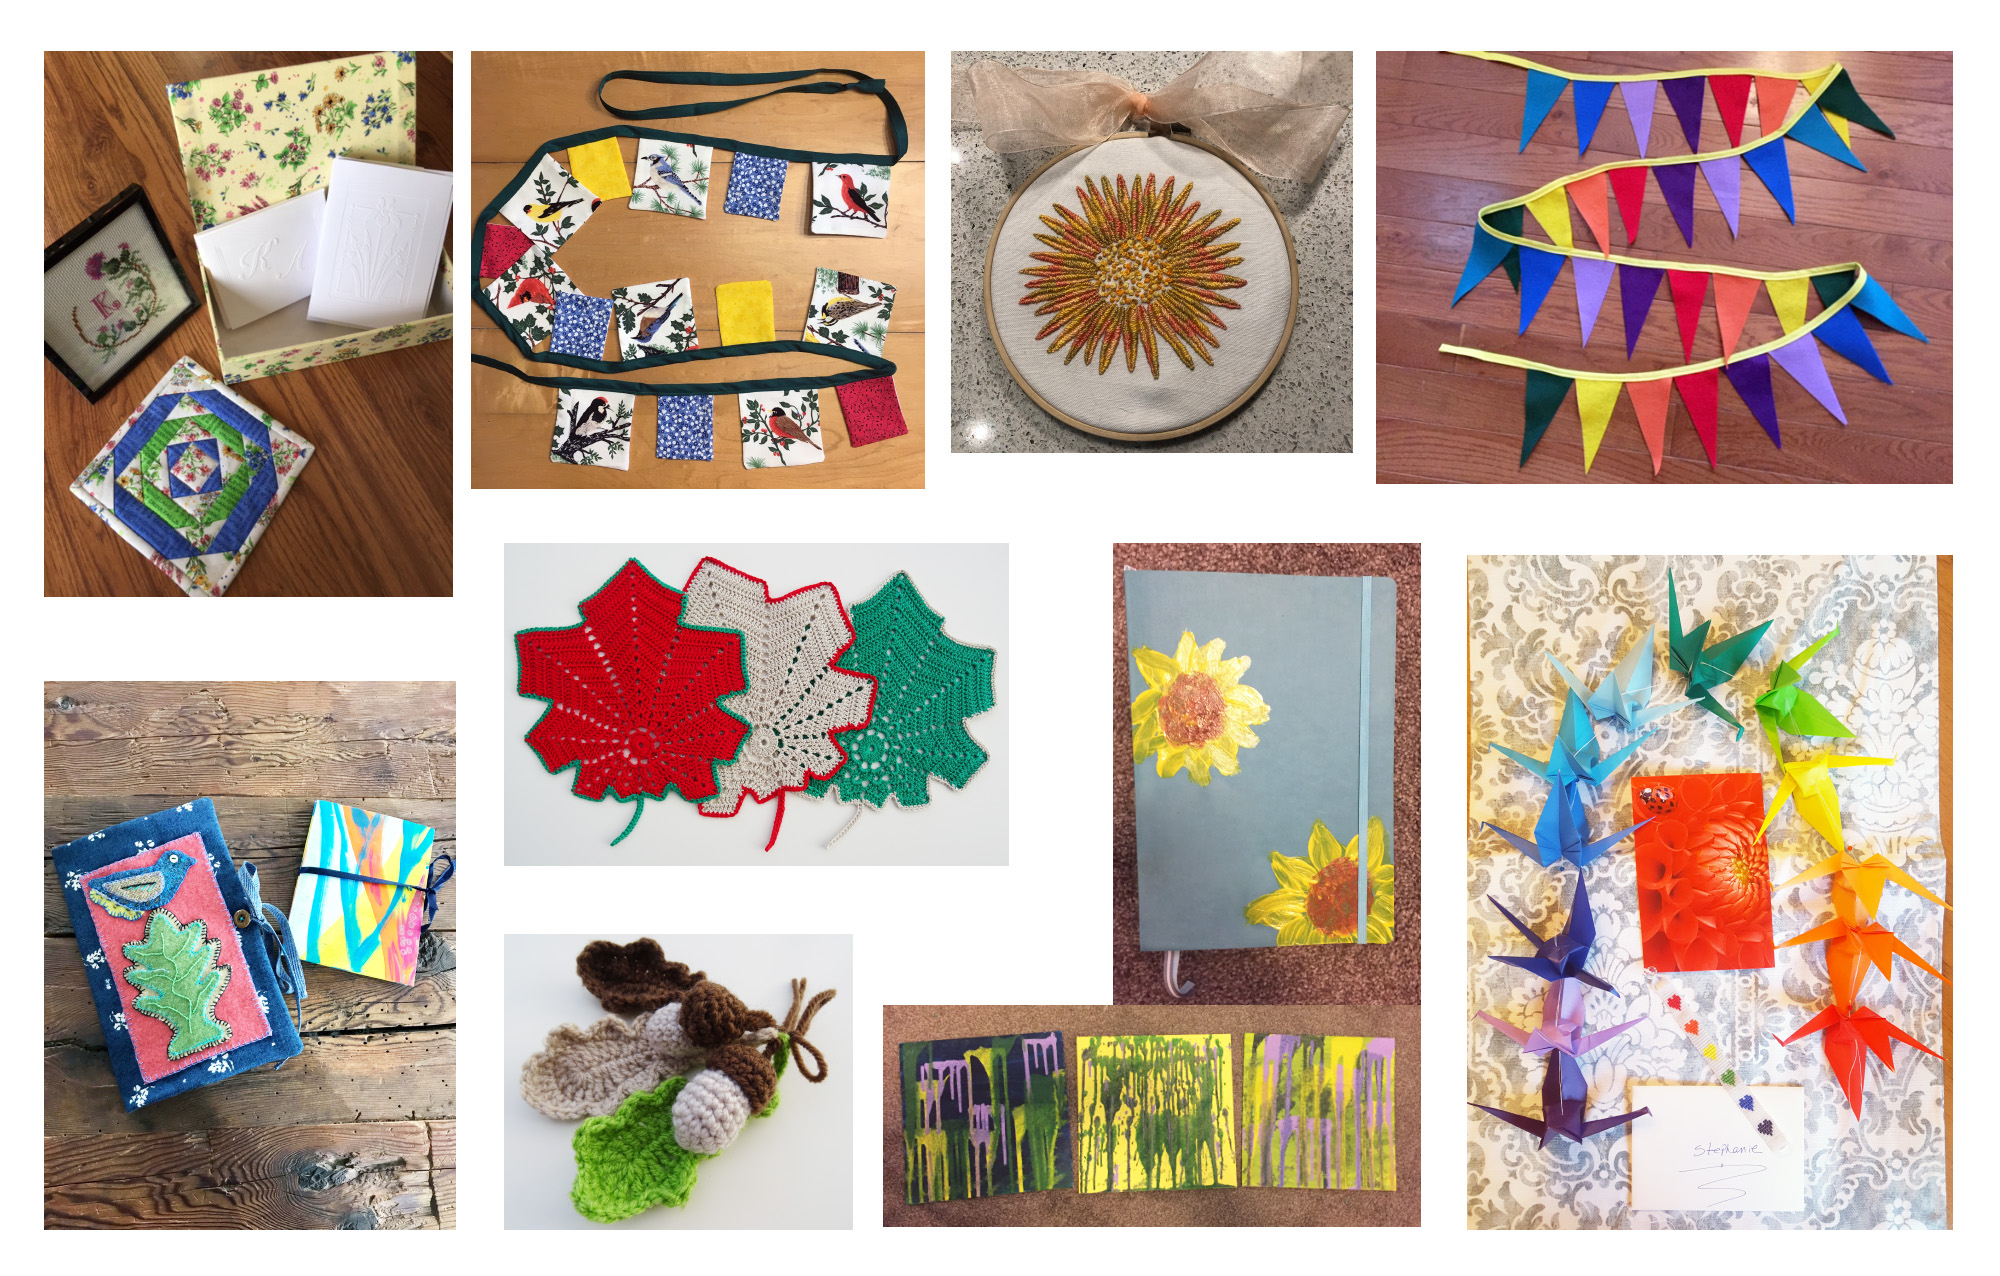 Bits of Handmade Joy Created by the Joy Exchange Participants and Sent to their Partners